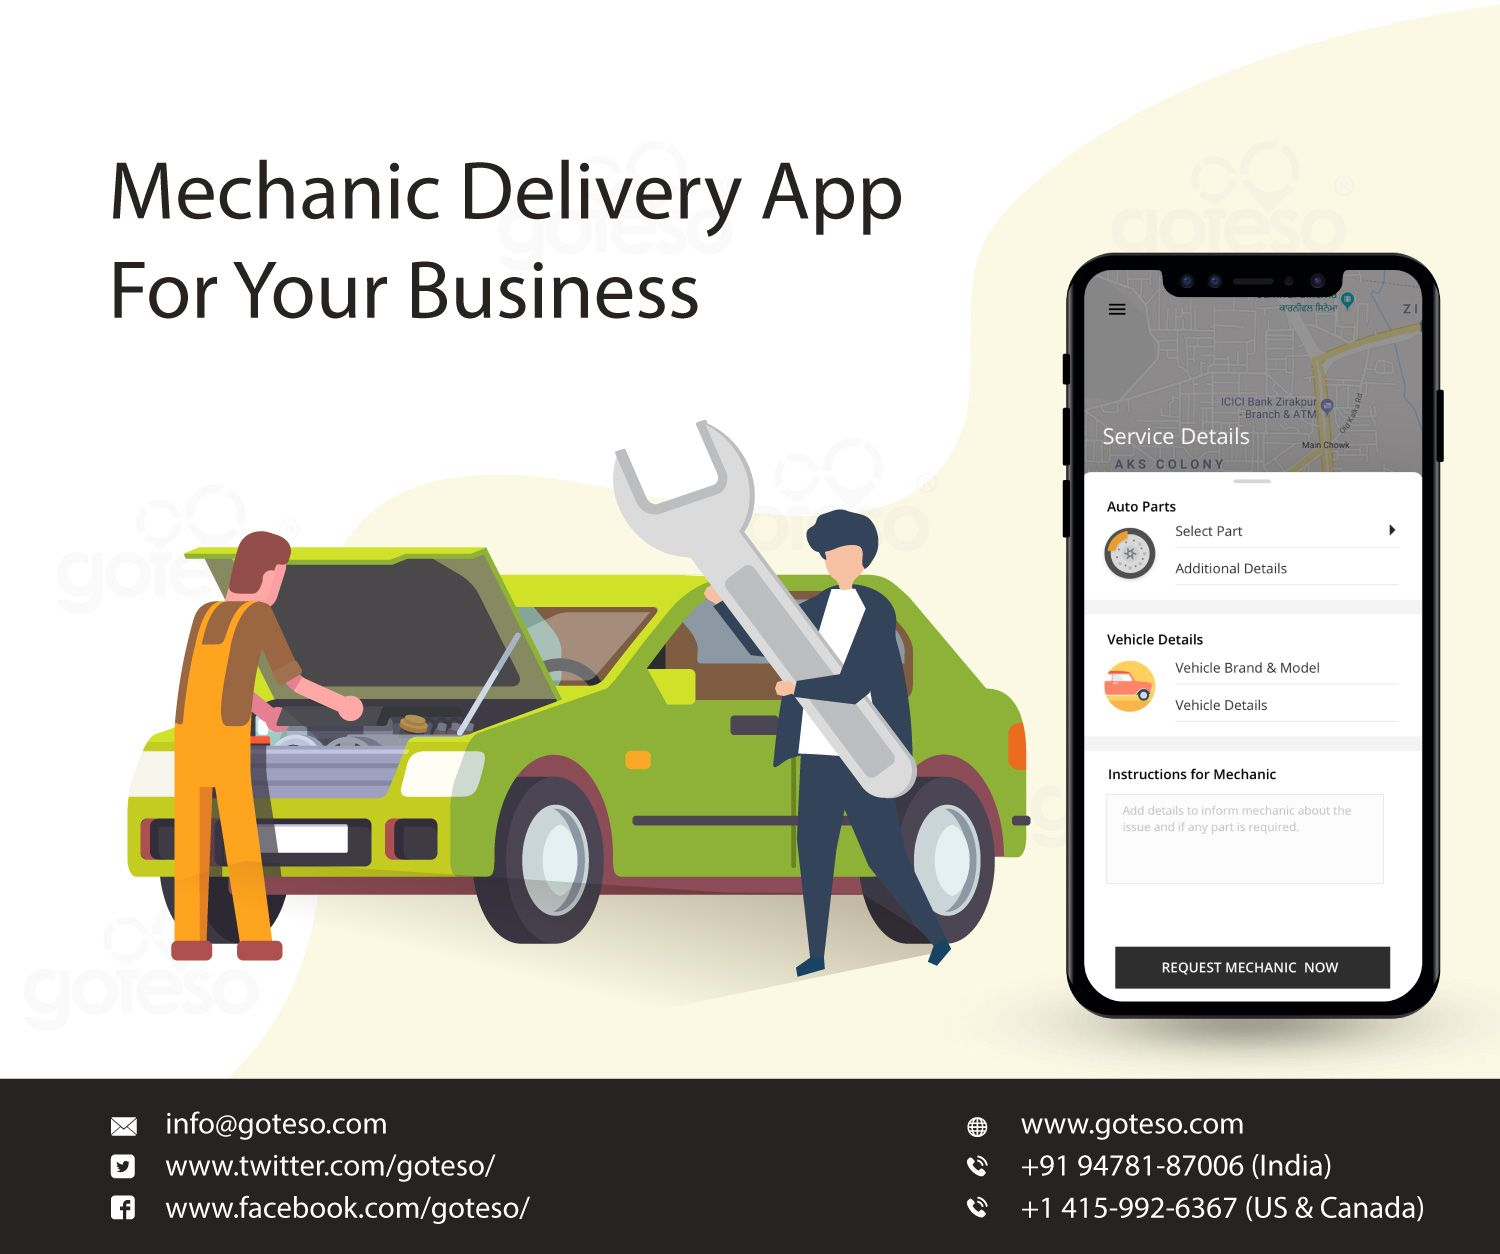 Goteso Is On Demand Mechanic App Development Company Which